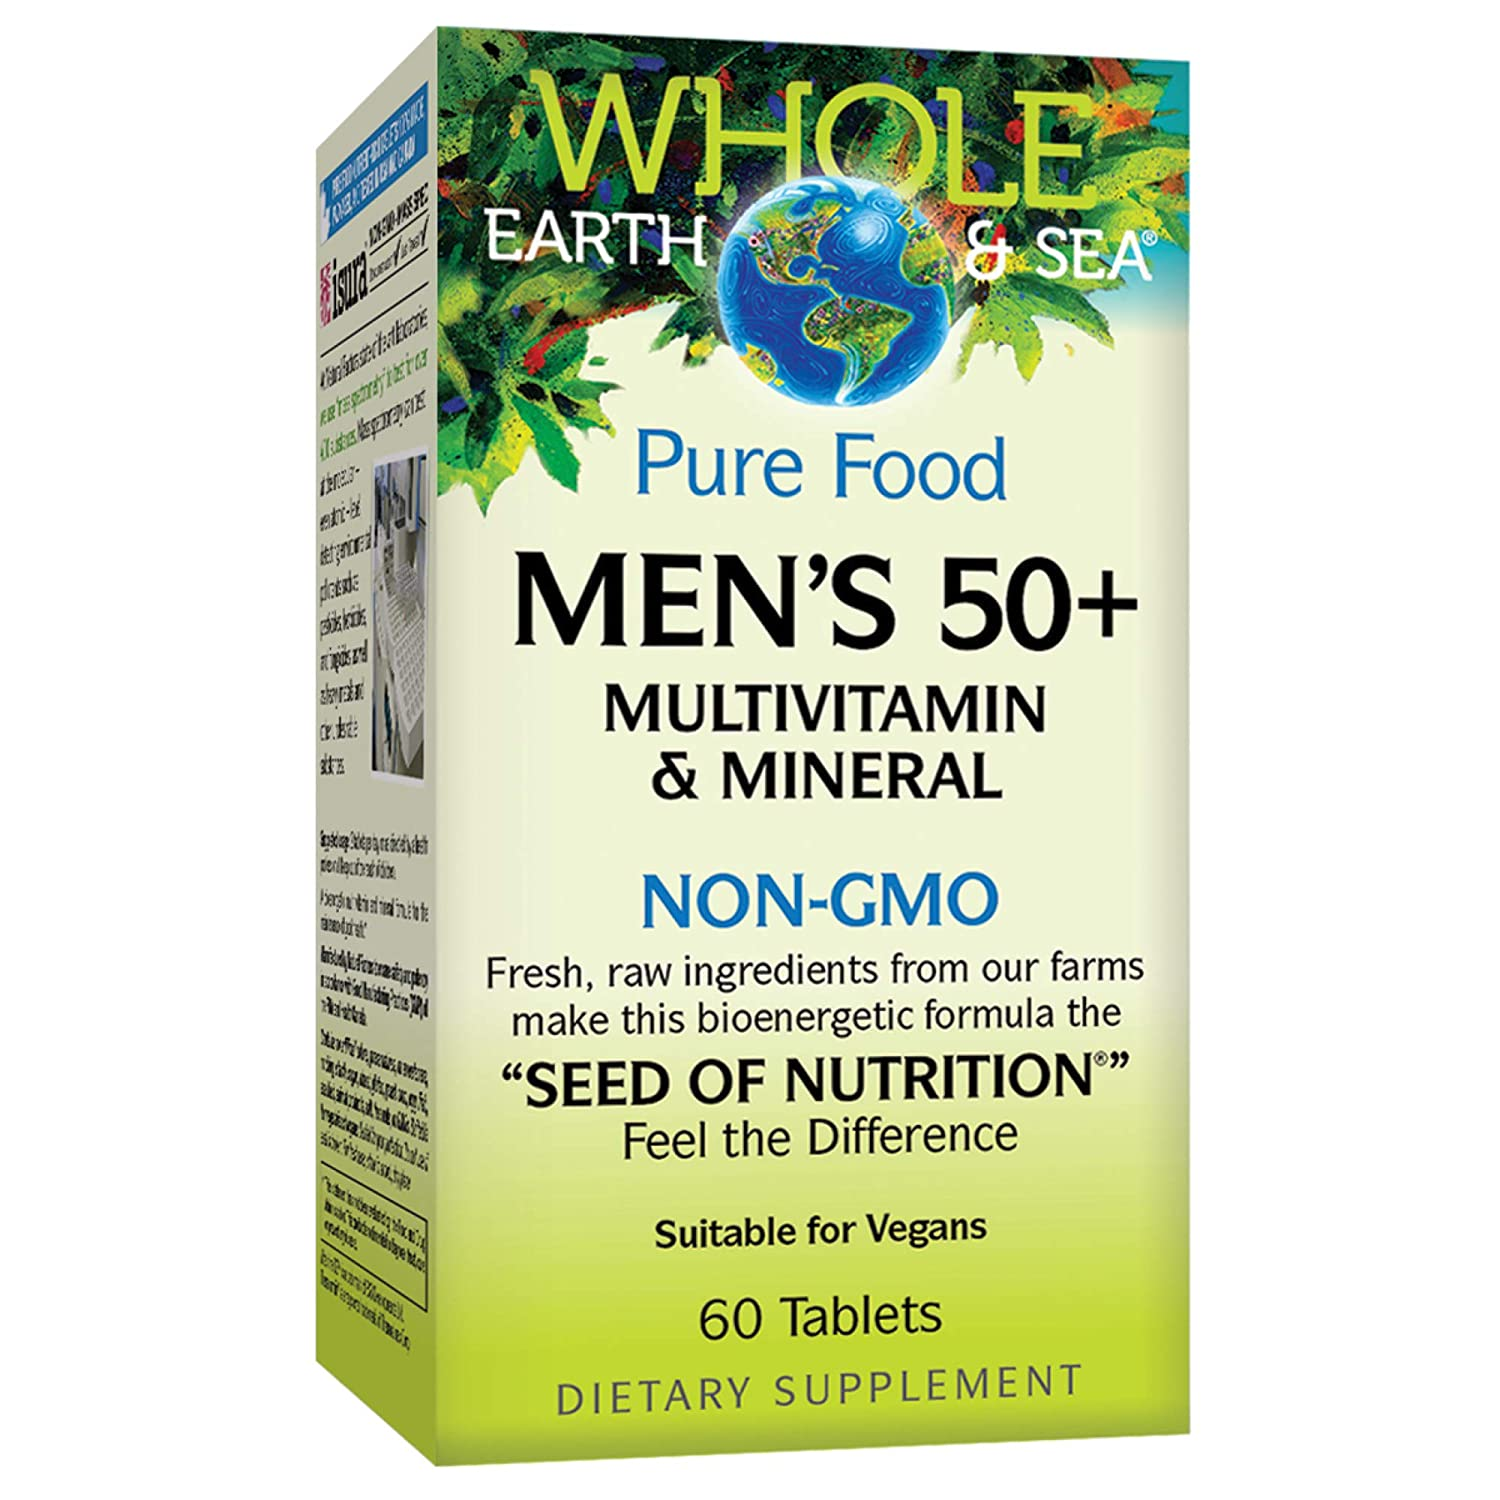 Whole Earth Sea from Natural Factors, Men s 50 Multivitamin Mineral, Whole Food Supplement, Vegan and Gluten Free, 60 Tablets 30 Servings